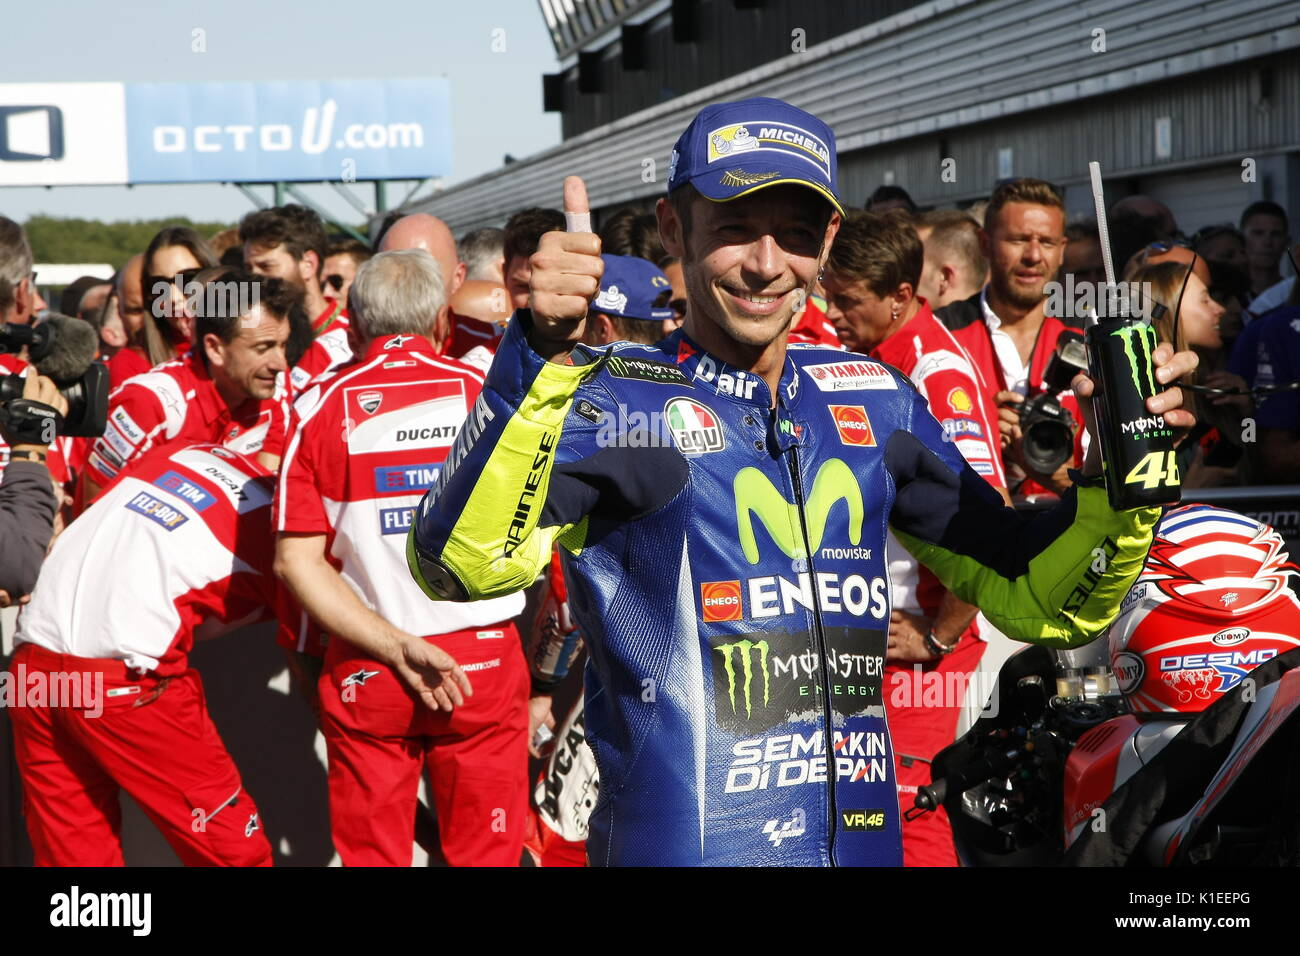 Silverstone, UK. 27th Aug, 2017.  Valentino Rossi (It) all smiles after finishing third on his Yamaha at the OCTO British MotoGP Credit: Motofoto/Alamy Live News - Stock Image